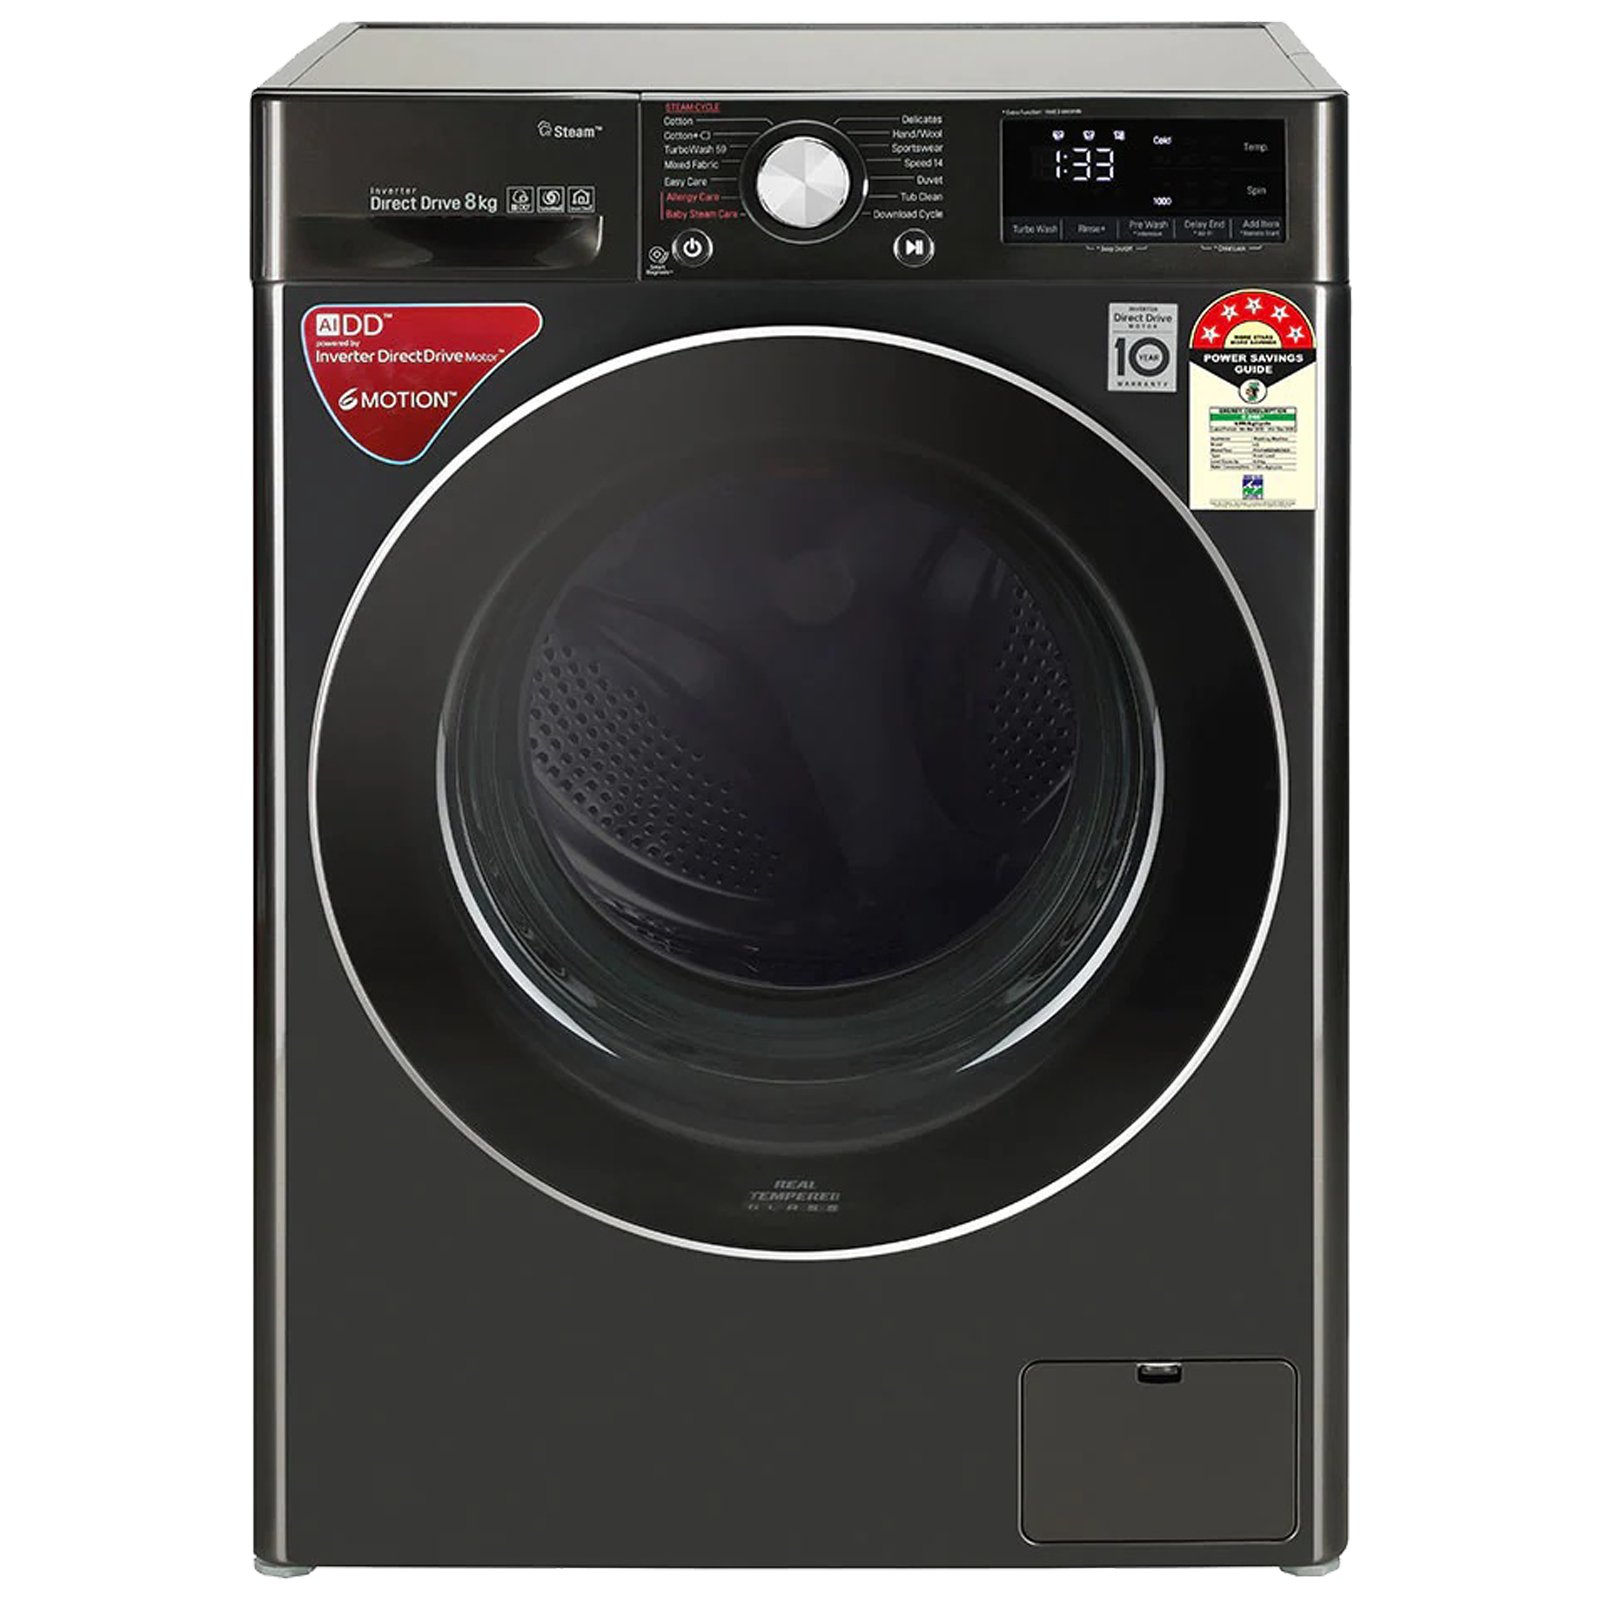 LG 8 kg 5 Star Fully Automatic Front Load Washing Machine (6 Motion Direct Drive Technology, FHV1408ZWB.ABLQEIL, Black Steel)_1